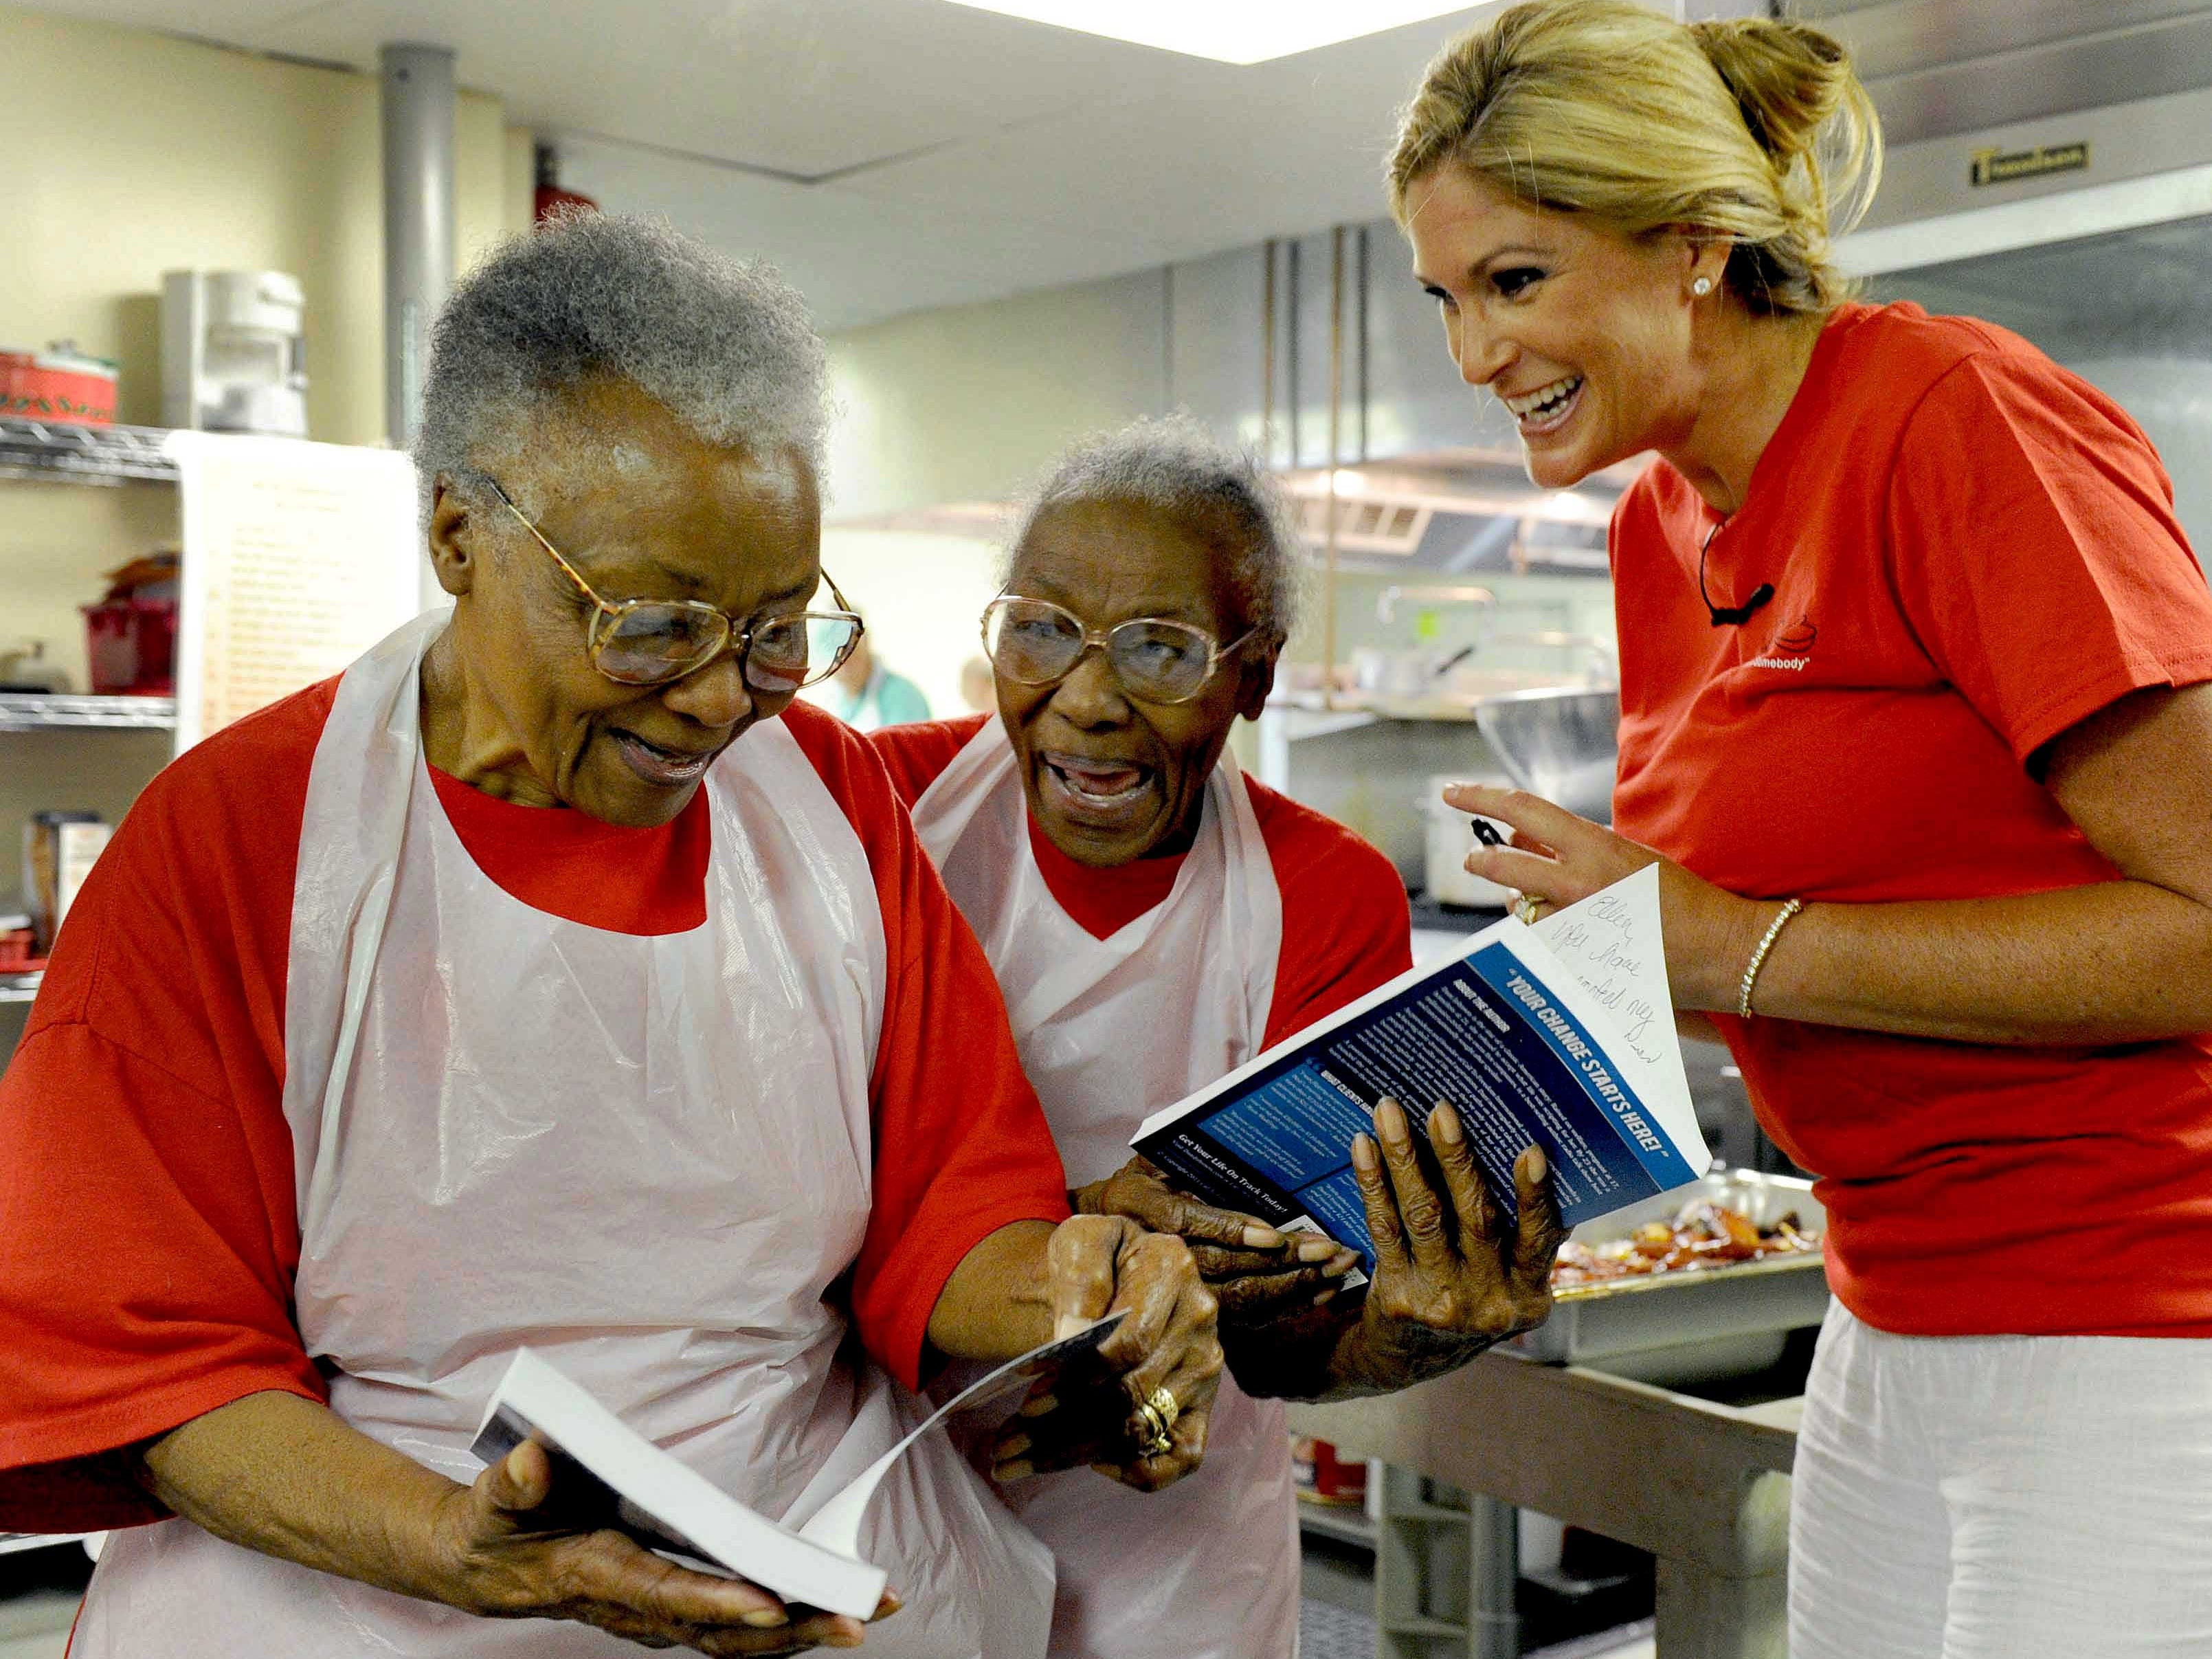 """Dani Johnson, who visited Knoxville as part of ABC's """"Secret Millionaire"""" show, watches as Helen Ashe, left, and Ellen Turner read the inscriptions she wrote for them in her new book. Johnson was back Thursday, Jul. 7, 2011 at the Love Kitchen and worked in the kitchen serving meals for a while."""